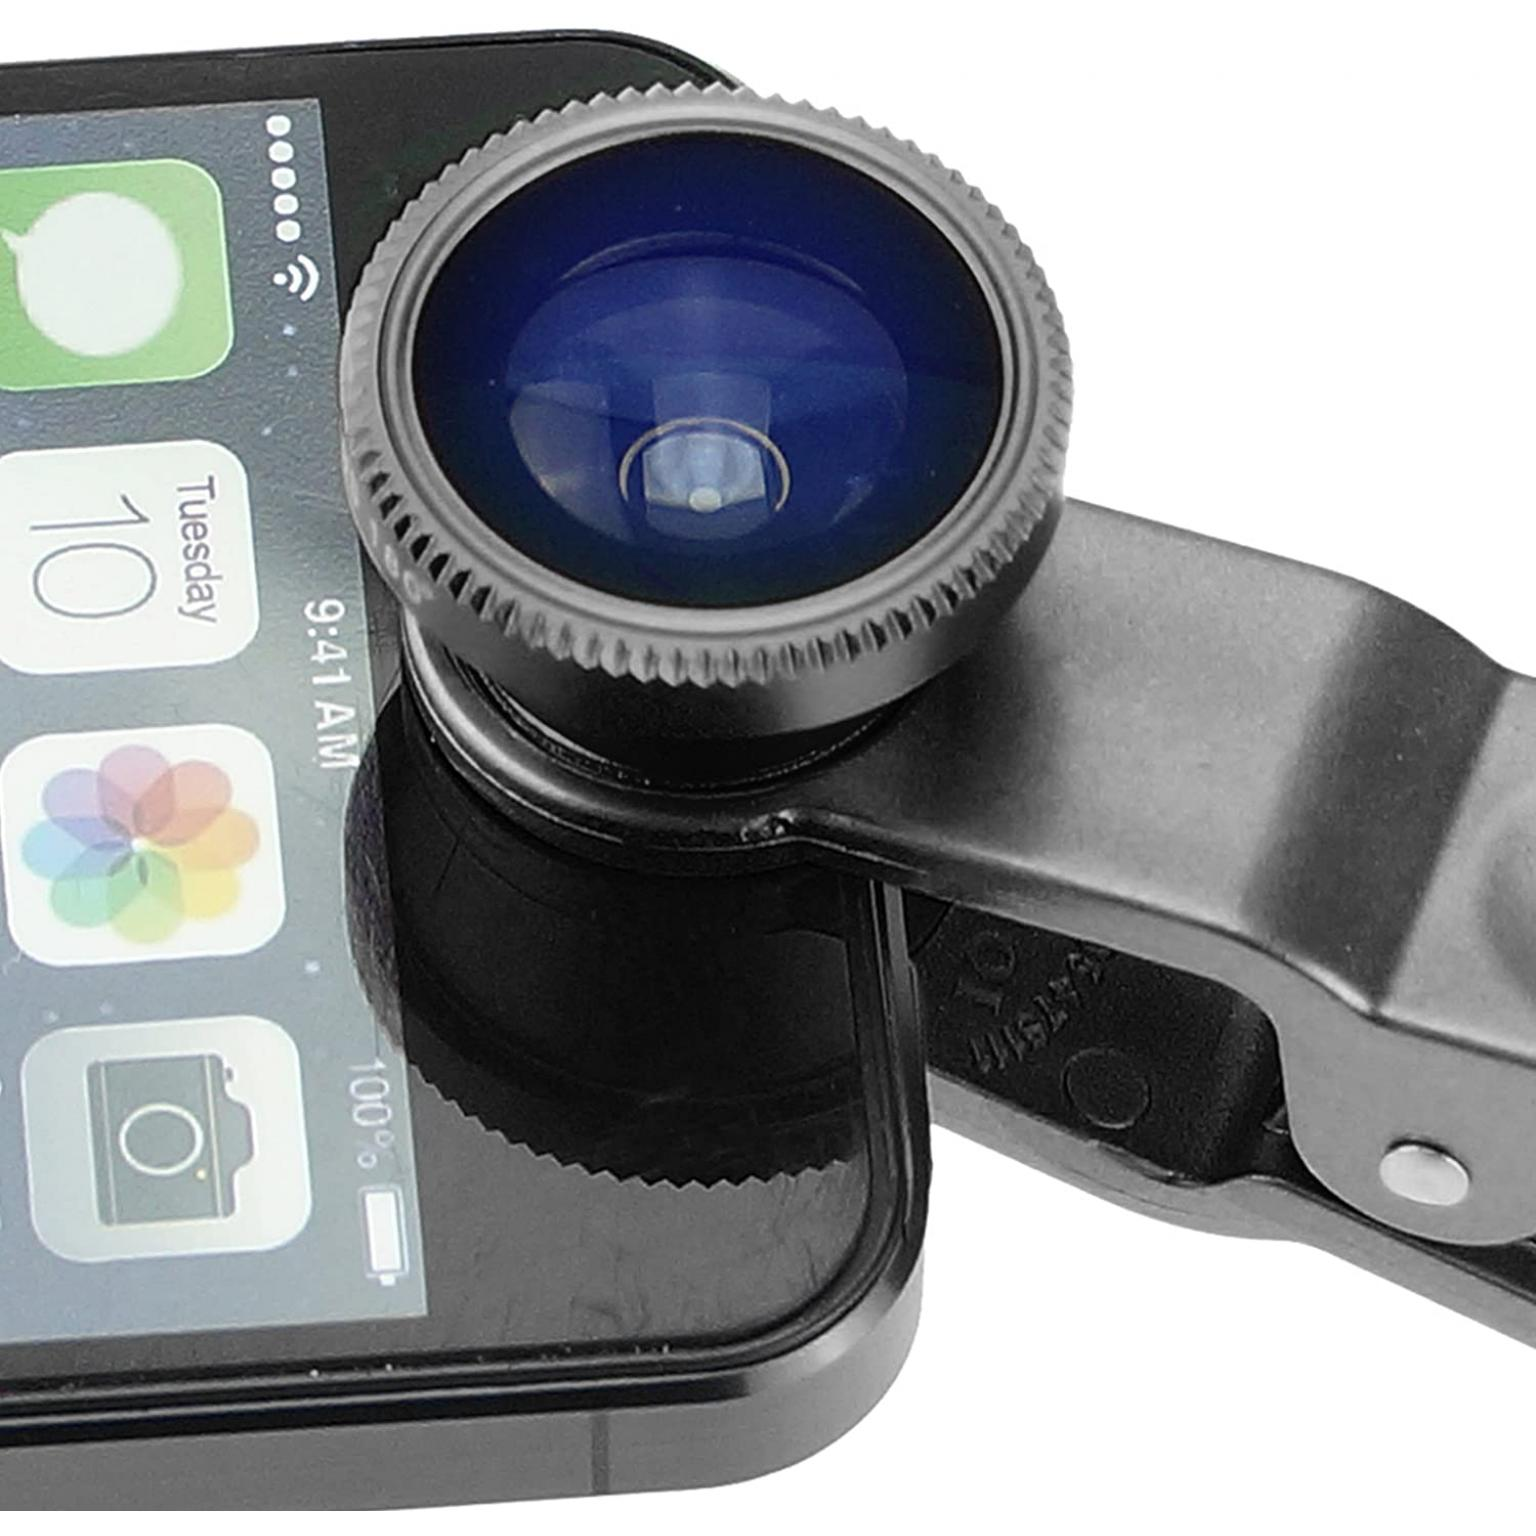 Camkix Universal 3 in 1 Cell Phone Camera Lens Kit - Fish Eye Lens / 2 in 1 Macro Lens & Wide Angle Lens/Universal Clip